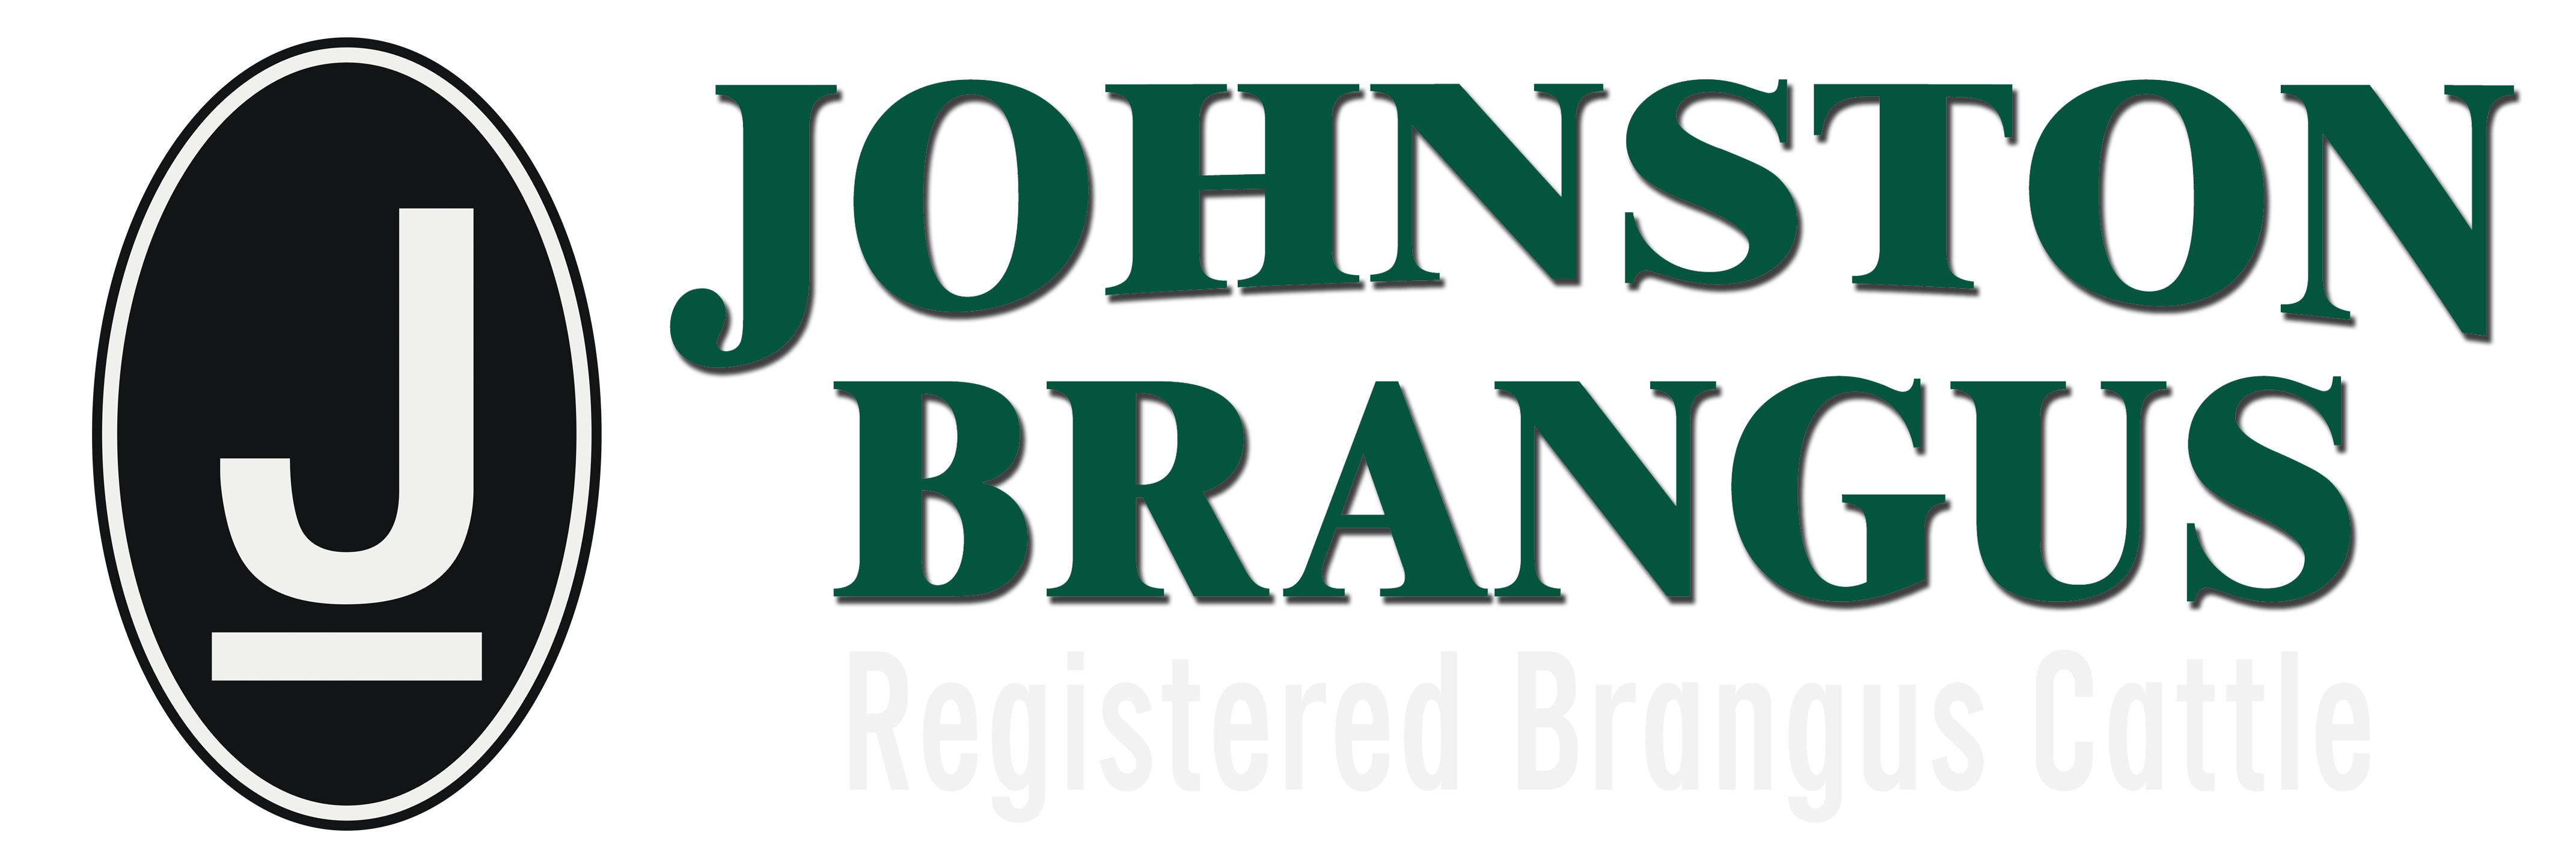 Johnston Brangus Logo